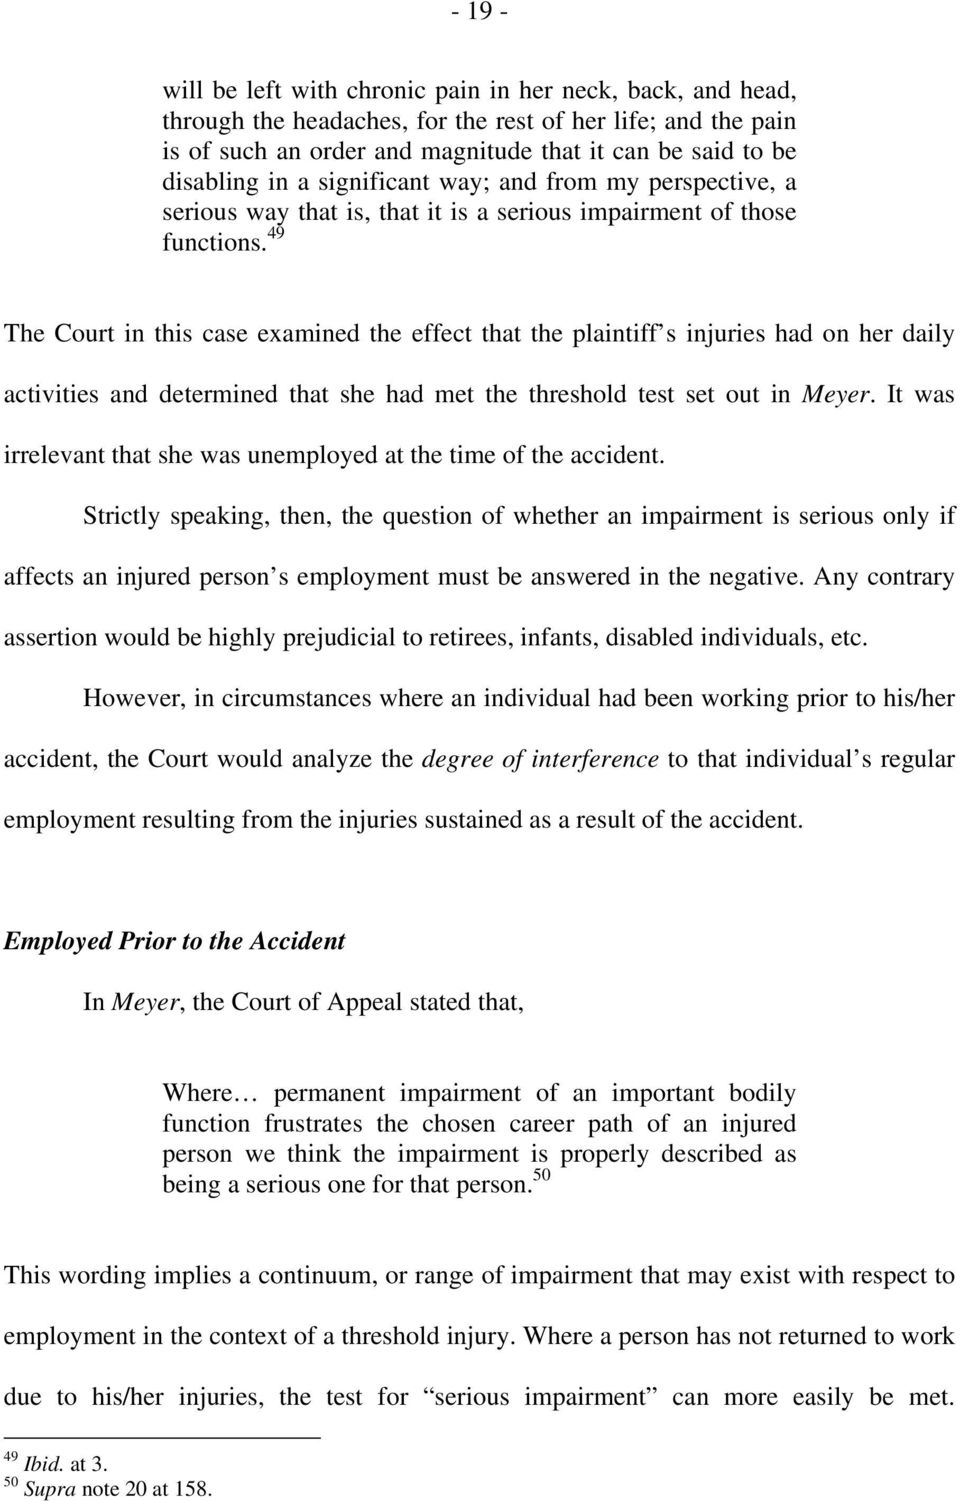 49 The Court in this case examined the effect that the plaintiff s injuries had on her daily activities and determined that she had met the threshold test set out in Meyer.